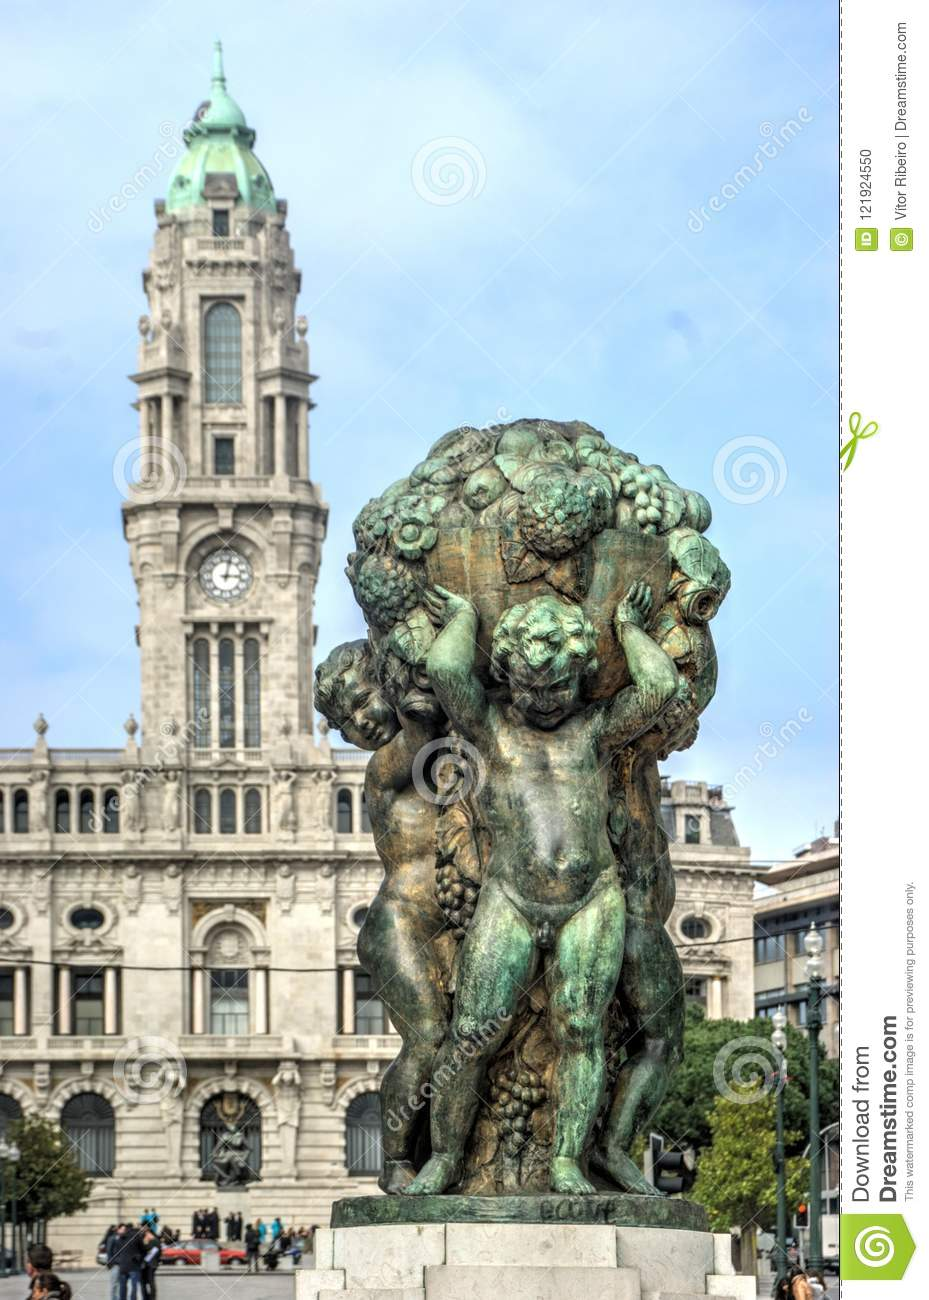 Bronze sculpture in front of Oporto City Hall